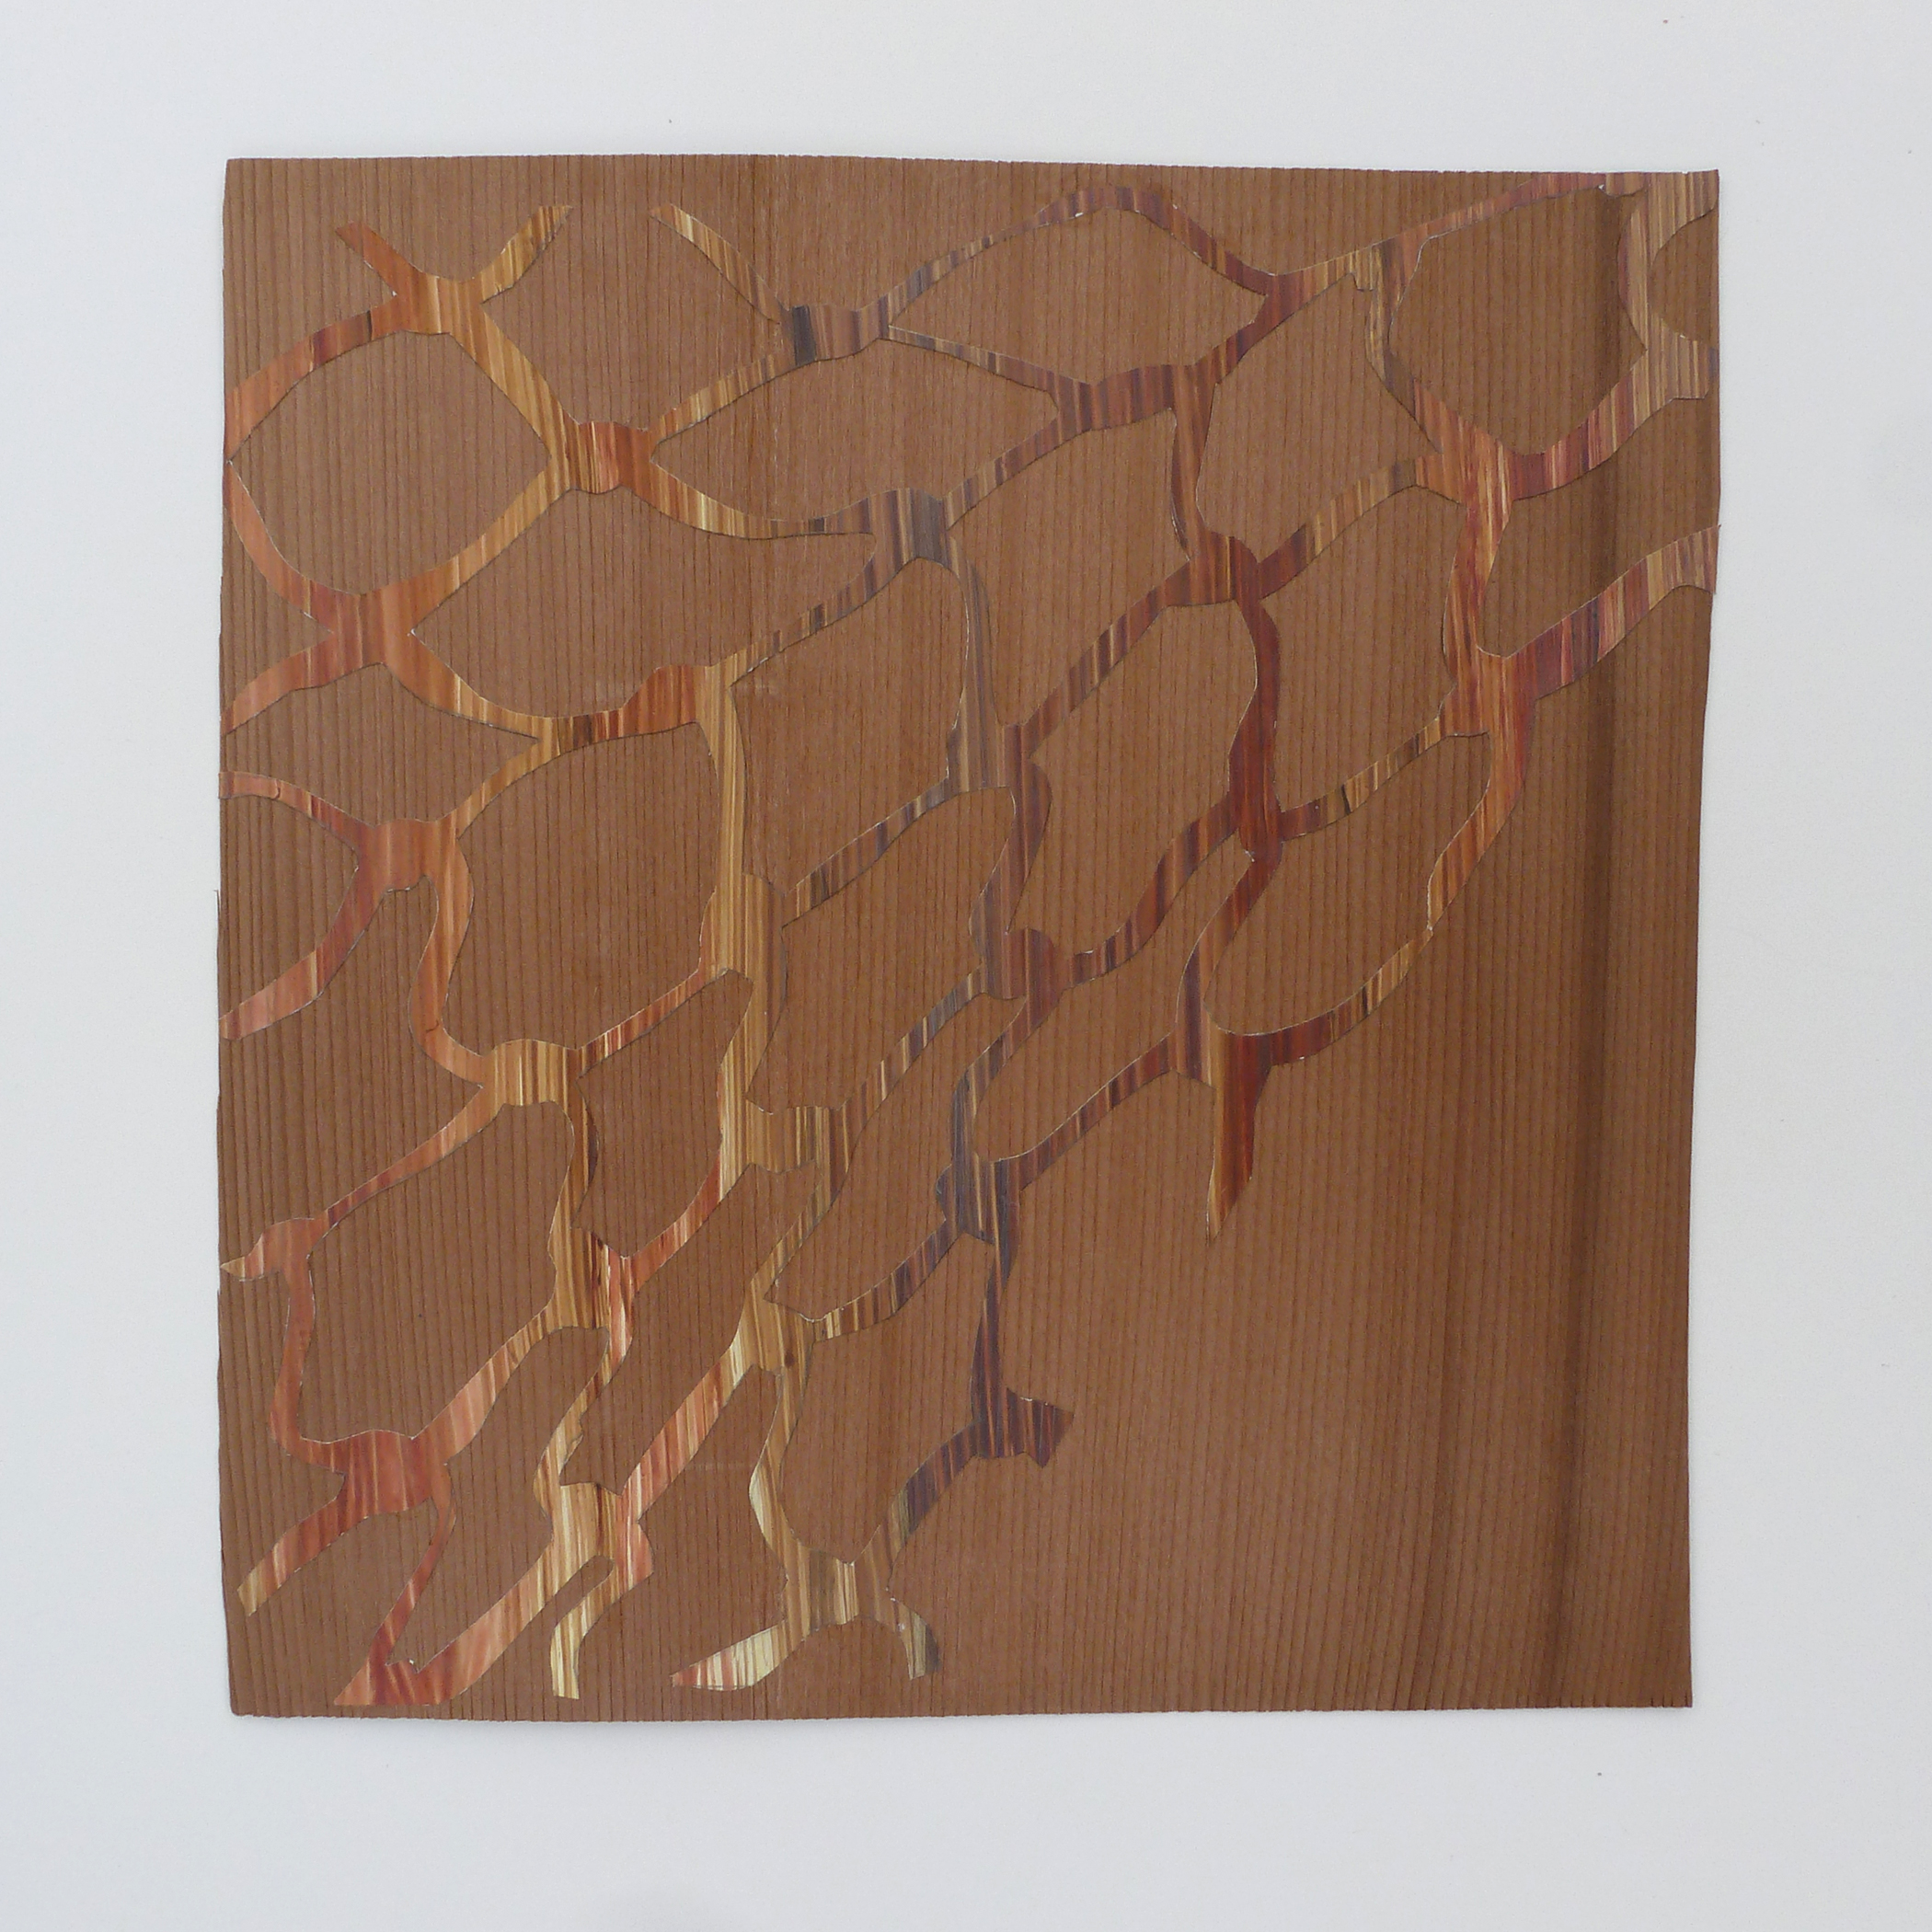 "Wood on Wood,  2014, hand-cut acrylic on paper, mahogany veneer, H 8"" x W 8"""